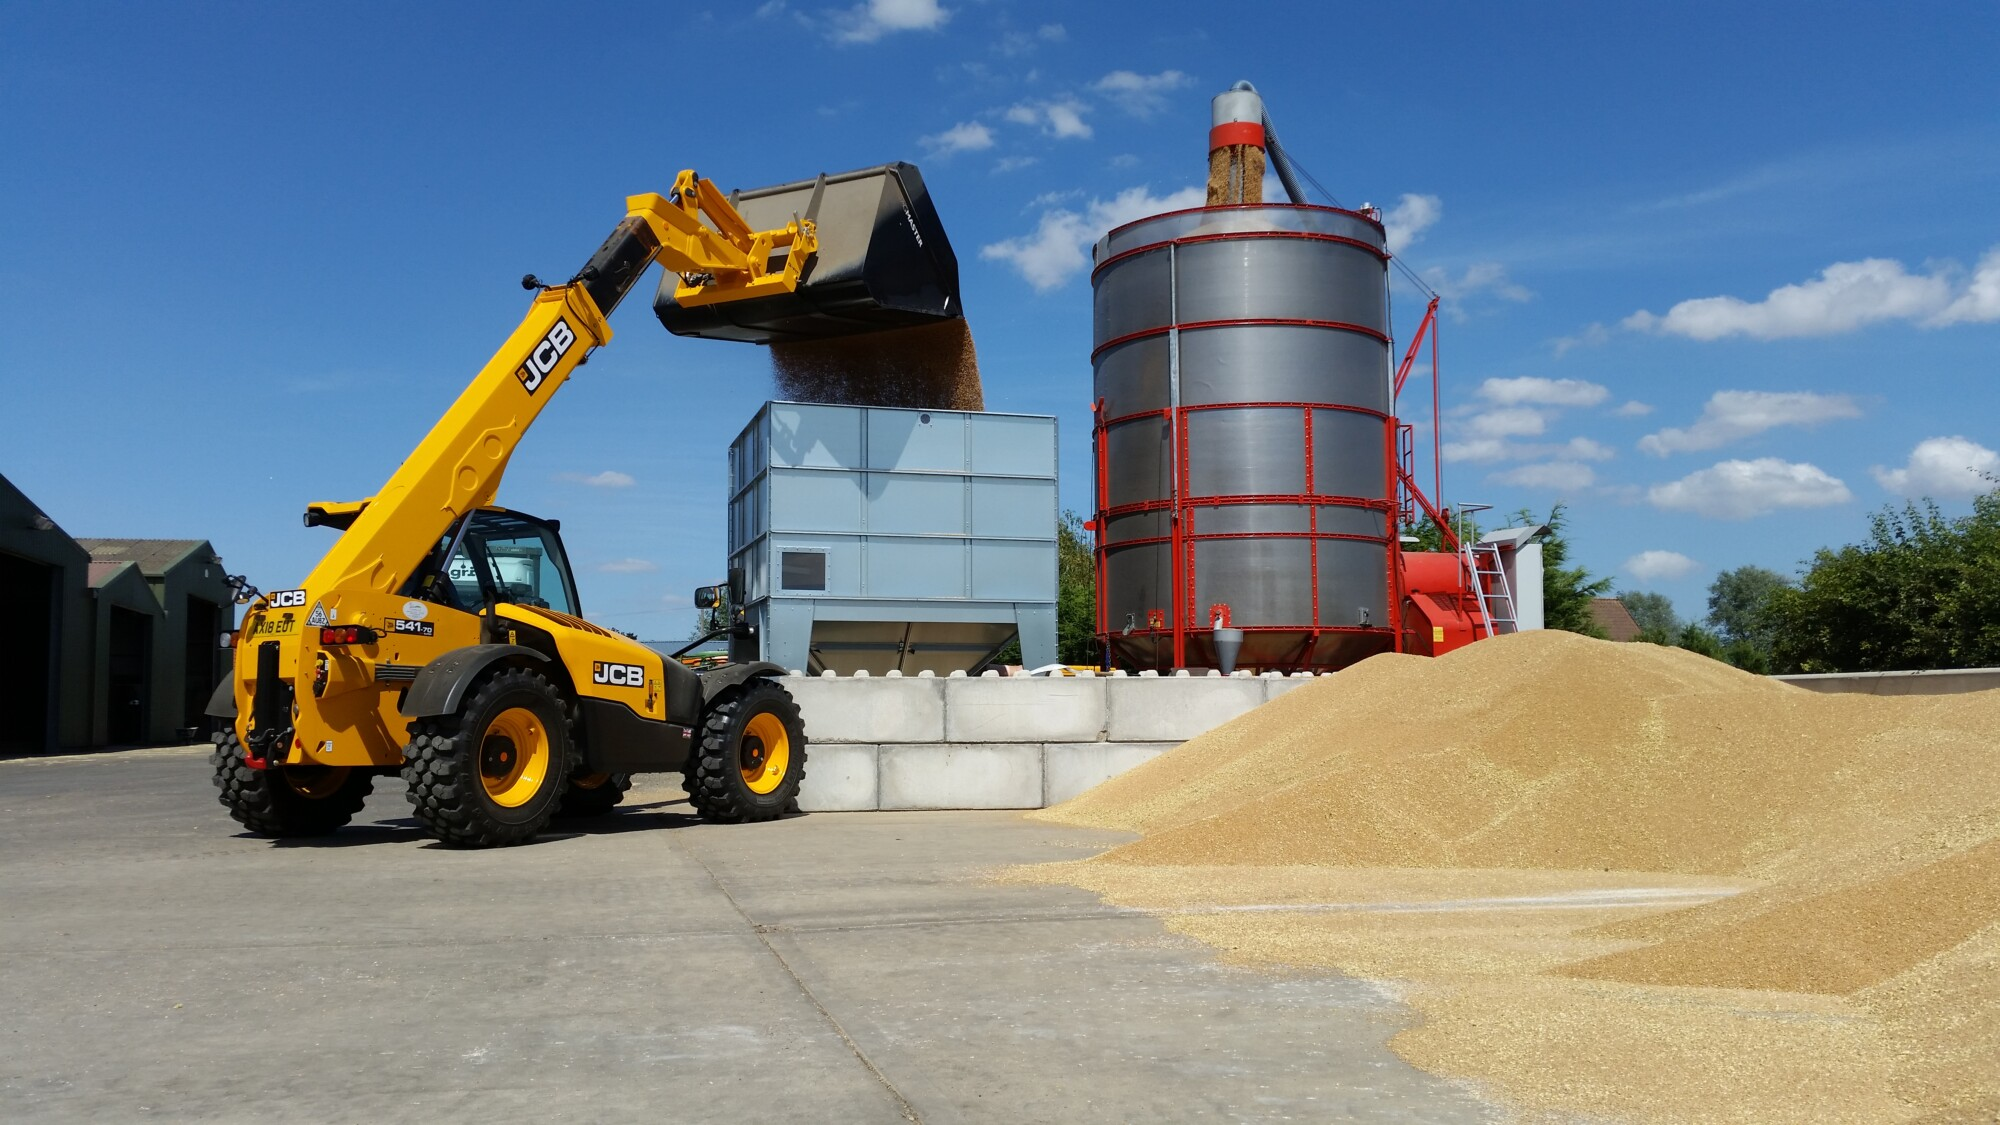 New grain handling technology on display at Midlands Machinery Show